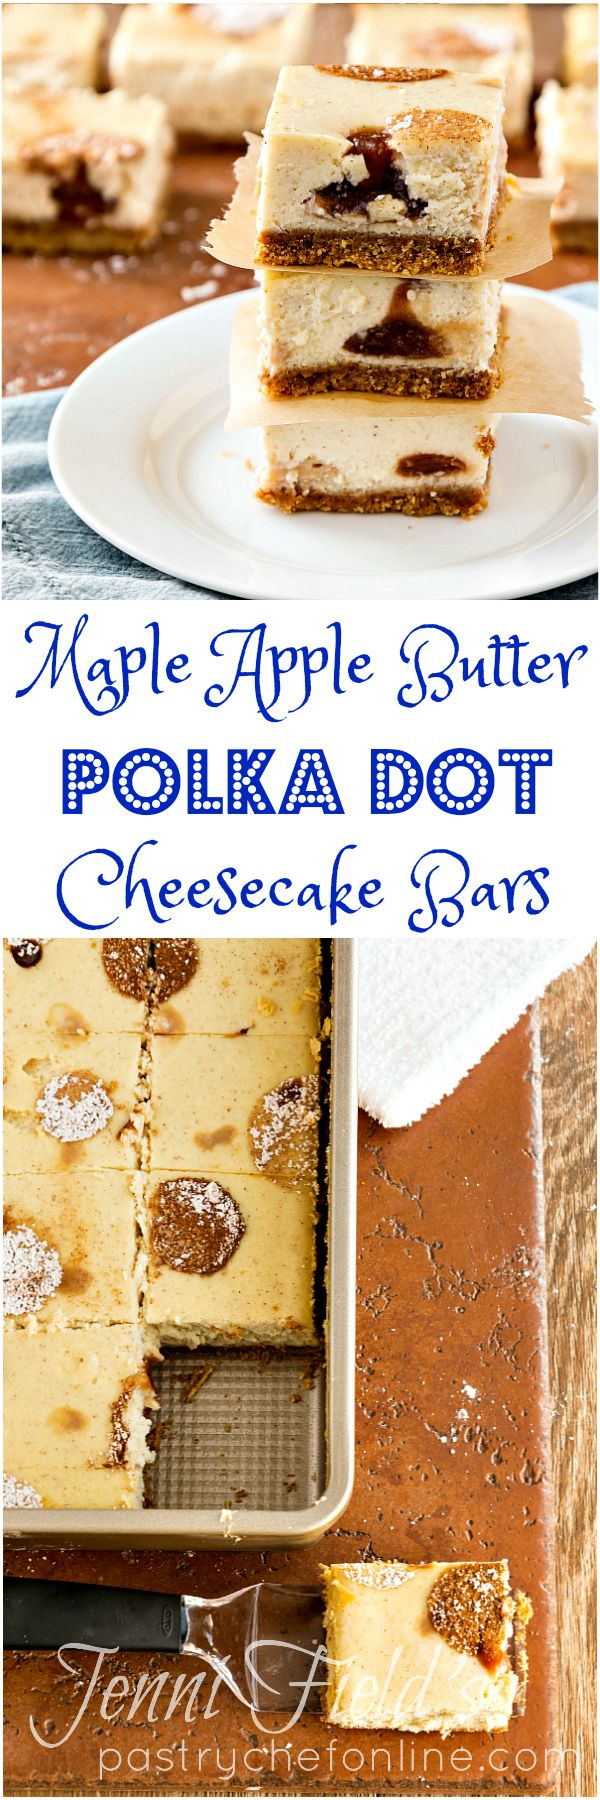 These maple apple butter polka dot cheesecake bars are fun to make and even more fun to eat. I love seeing the little polka dots of apple butter inside the bars when I cut them. And you can't beat maple, apple butter, and cinnamon for fall flavor. You're going to love this cheesecake bar recipe! | pastrychefonline.com